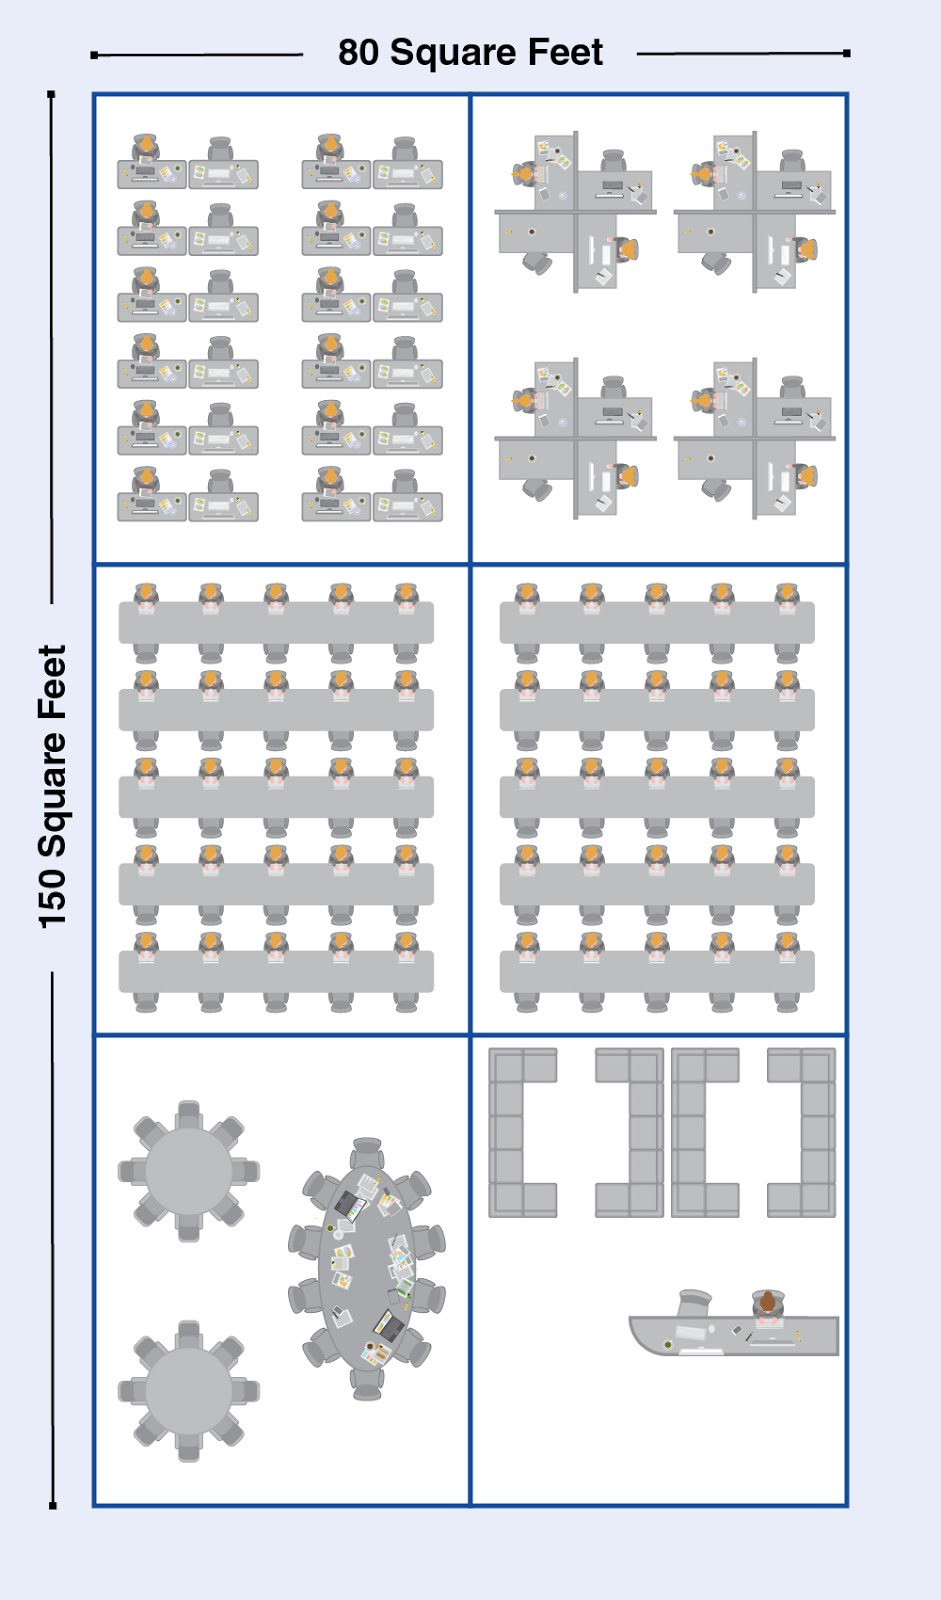 illustration of coworking desk layout with square footage